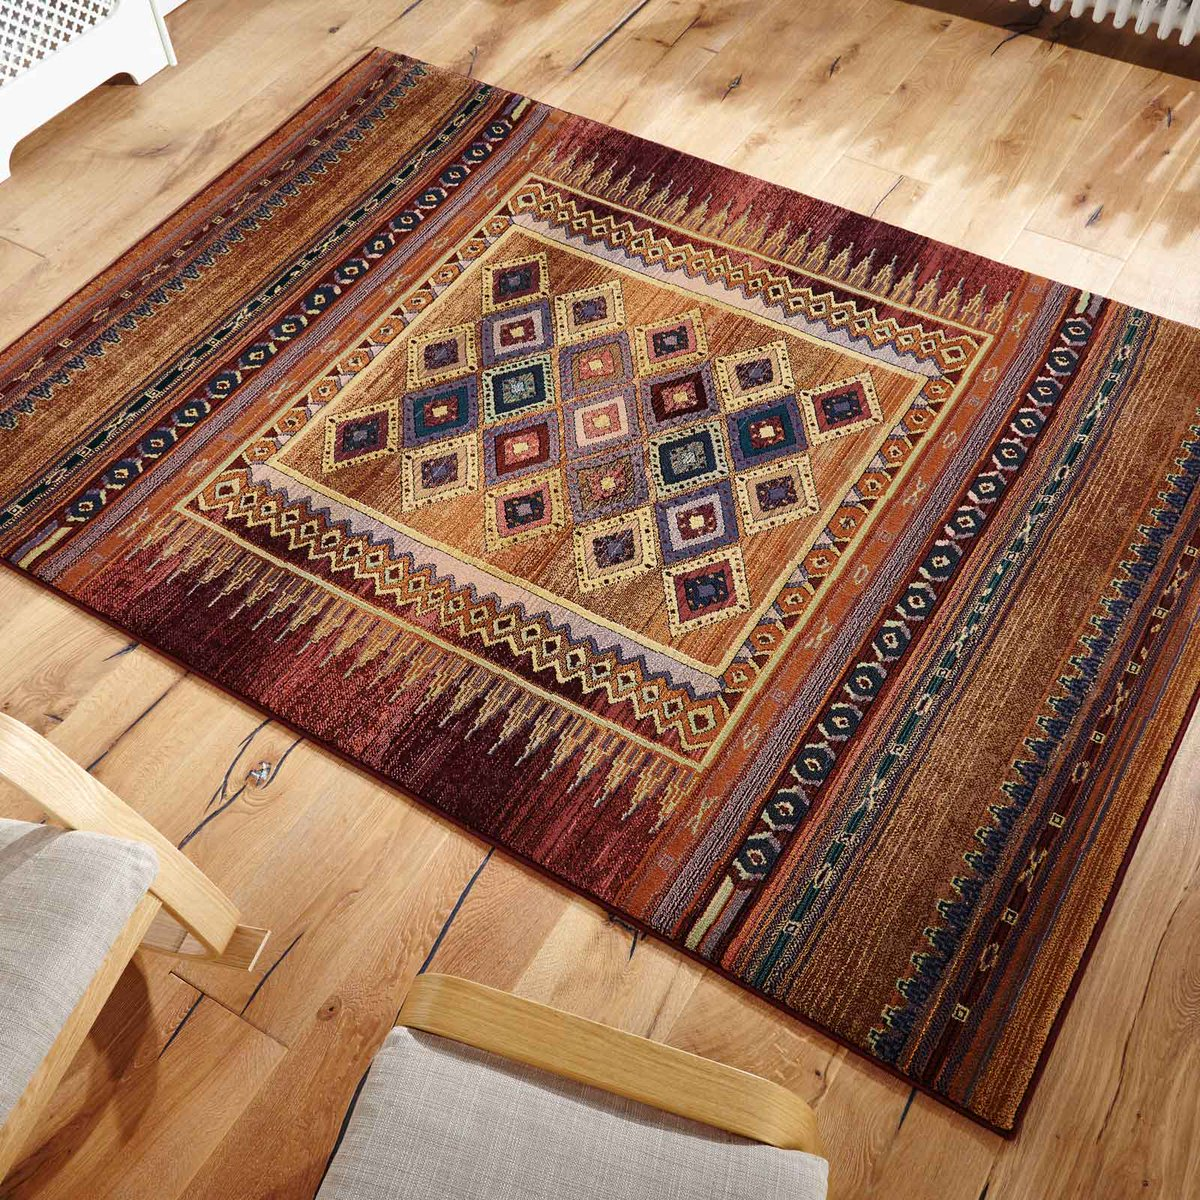 Make your home more beautiful with Gabbeh rugs timeless classical charm!  For more information, click here  http://bit.ly/2y9DES9 #Rugspic.twitter.com/KTepUgMjXZ  by The Rug Seller